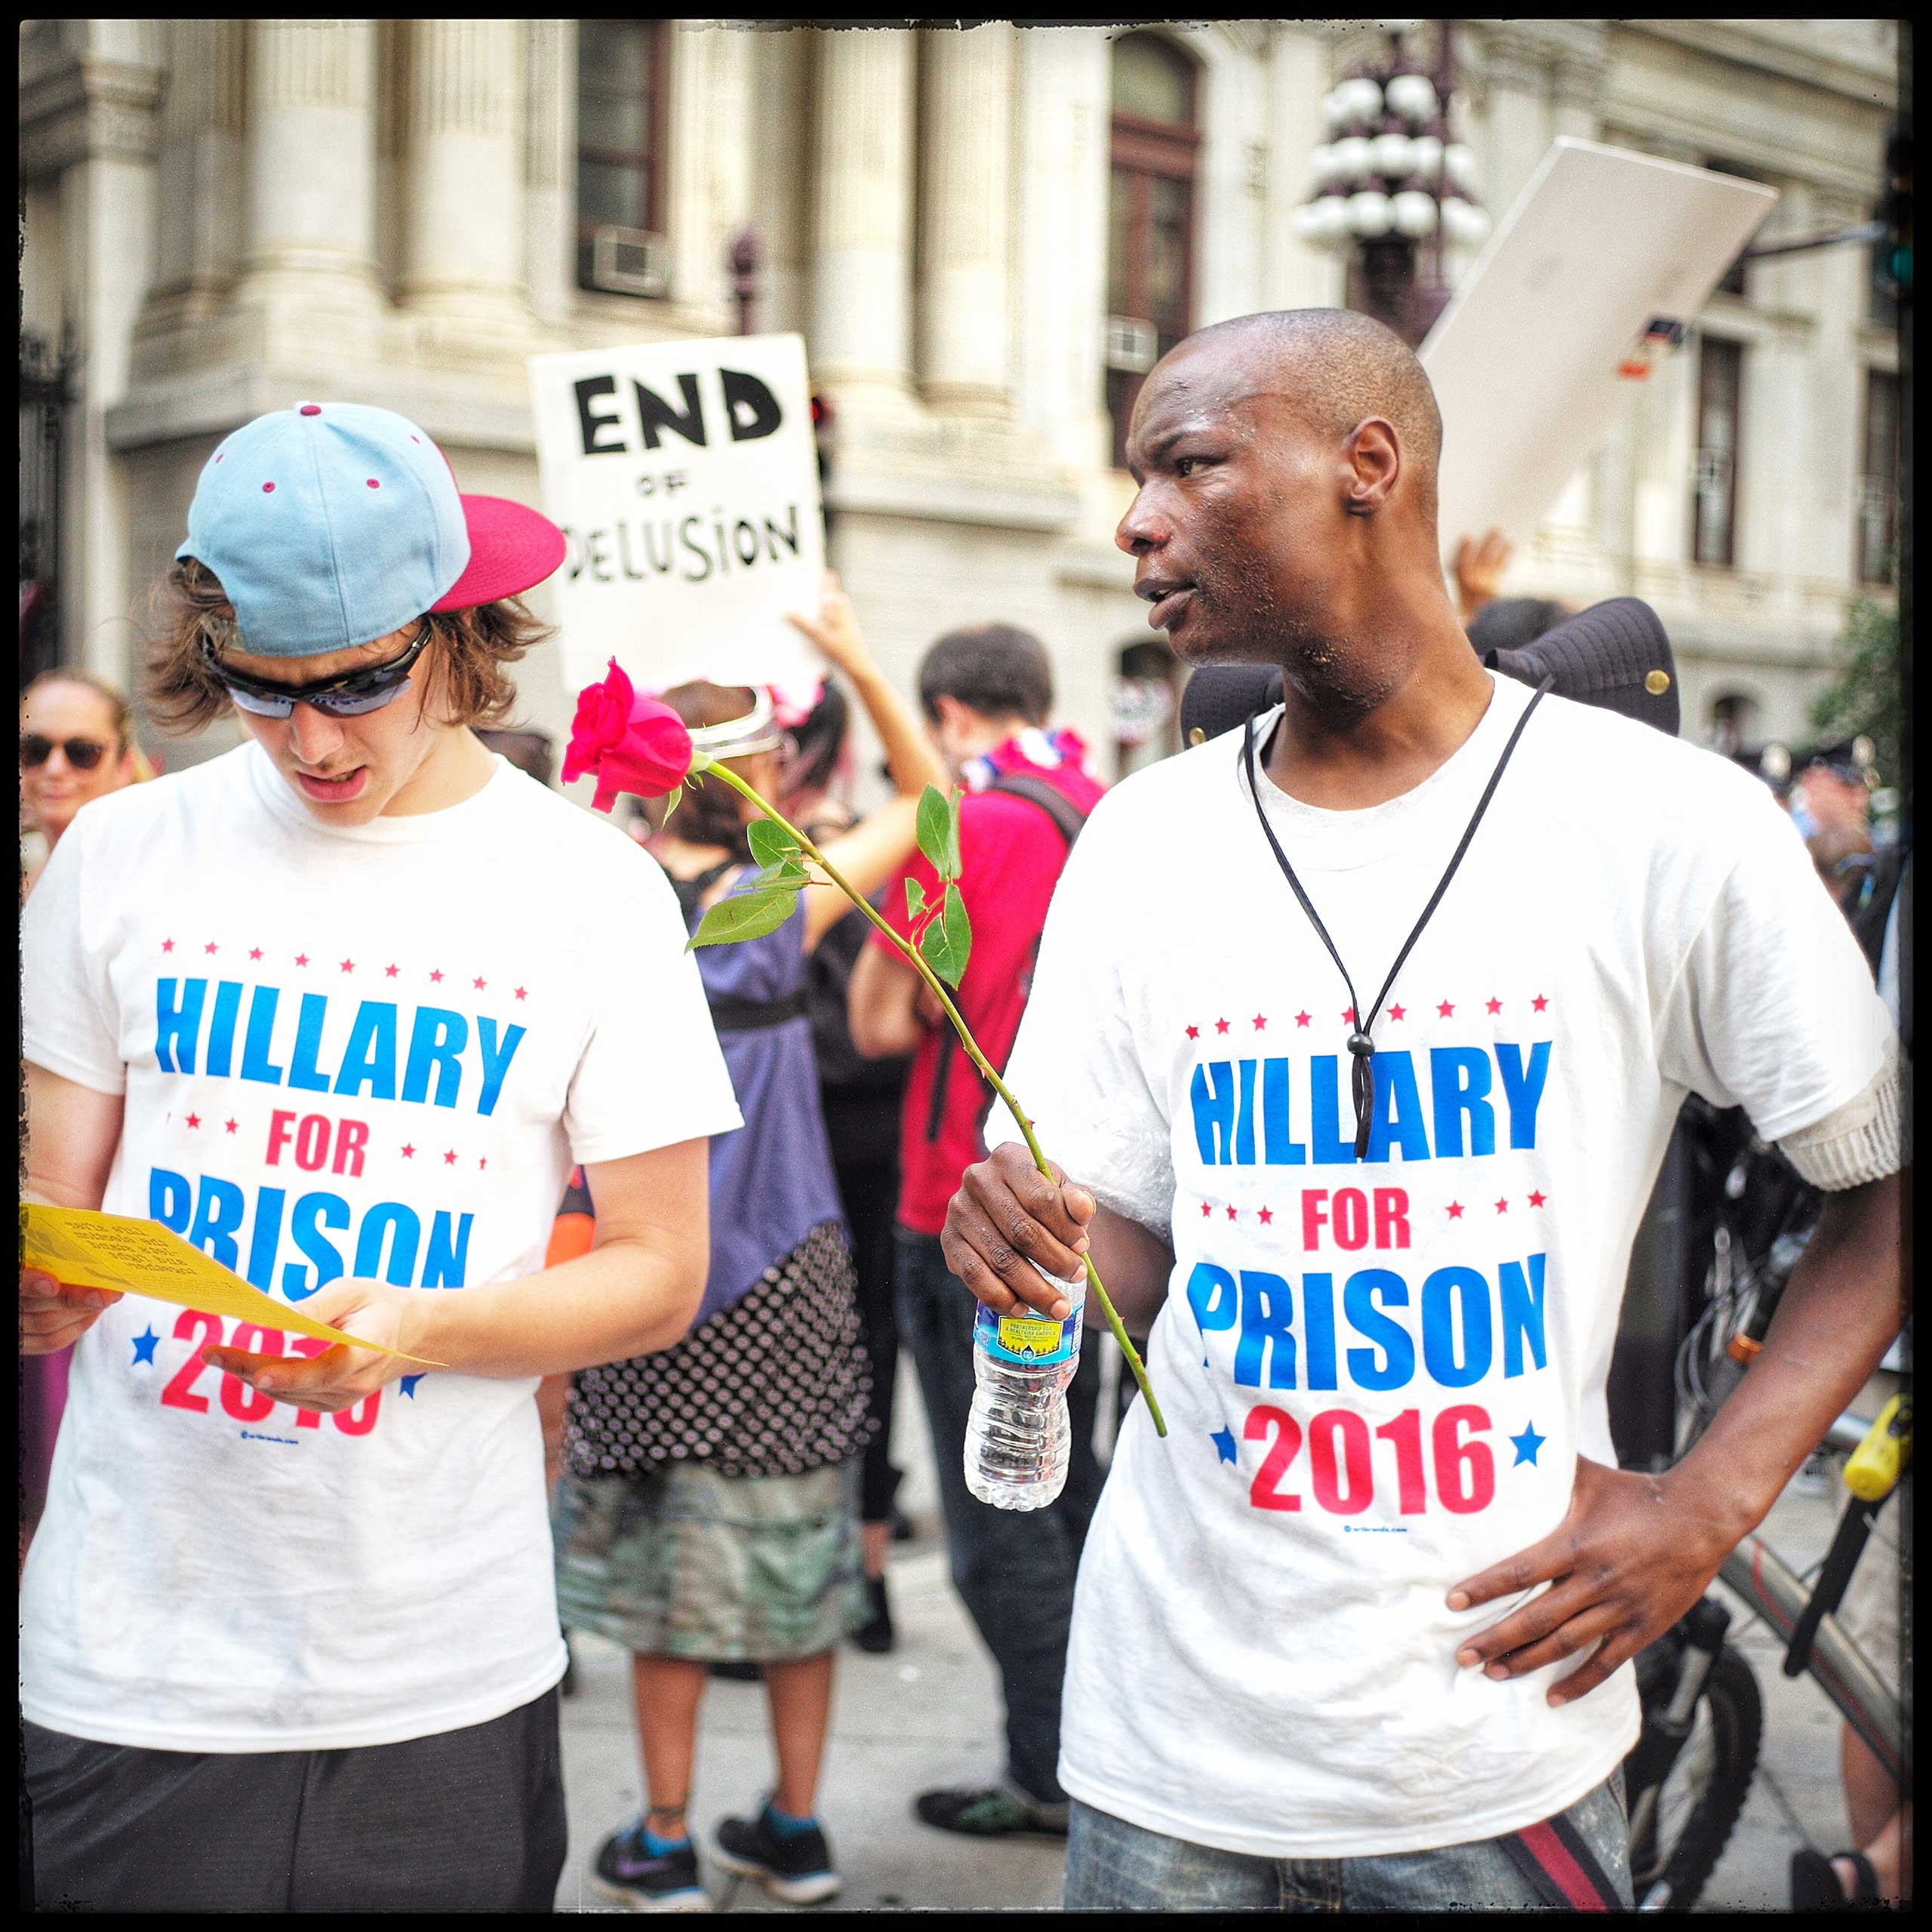 Two Bernie supporters, discuss which of the police officers they were going to give their last rose to. They were talking at the Democratic National Convention which was held in Philadelphia recently.